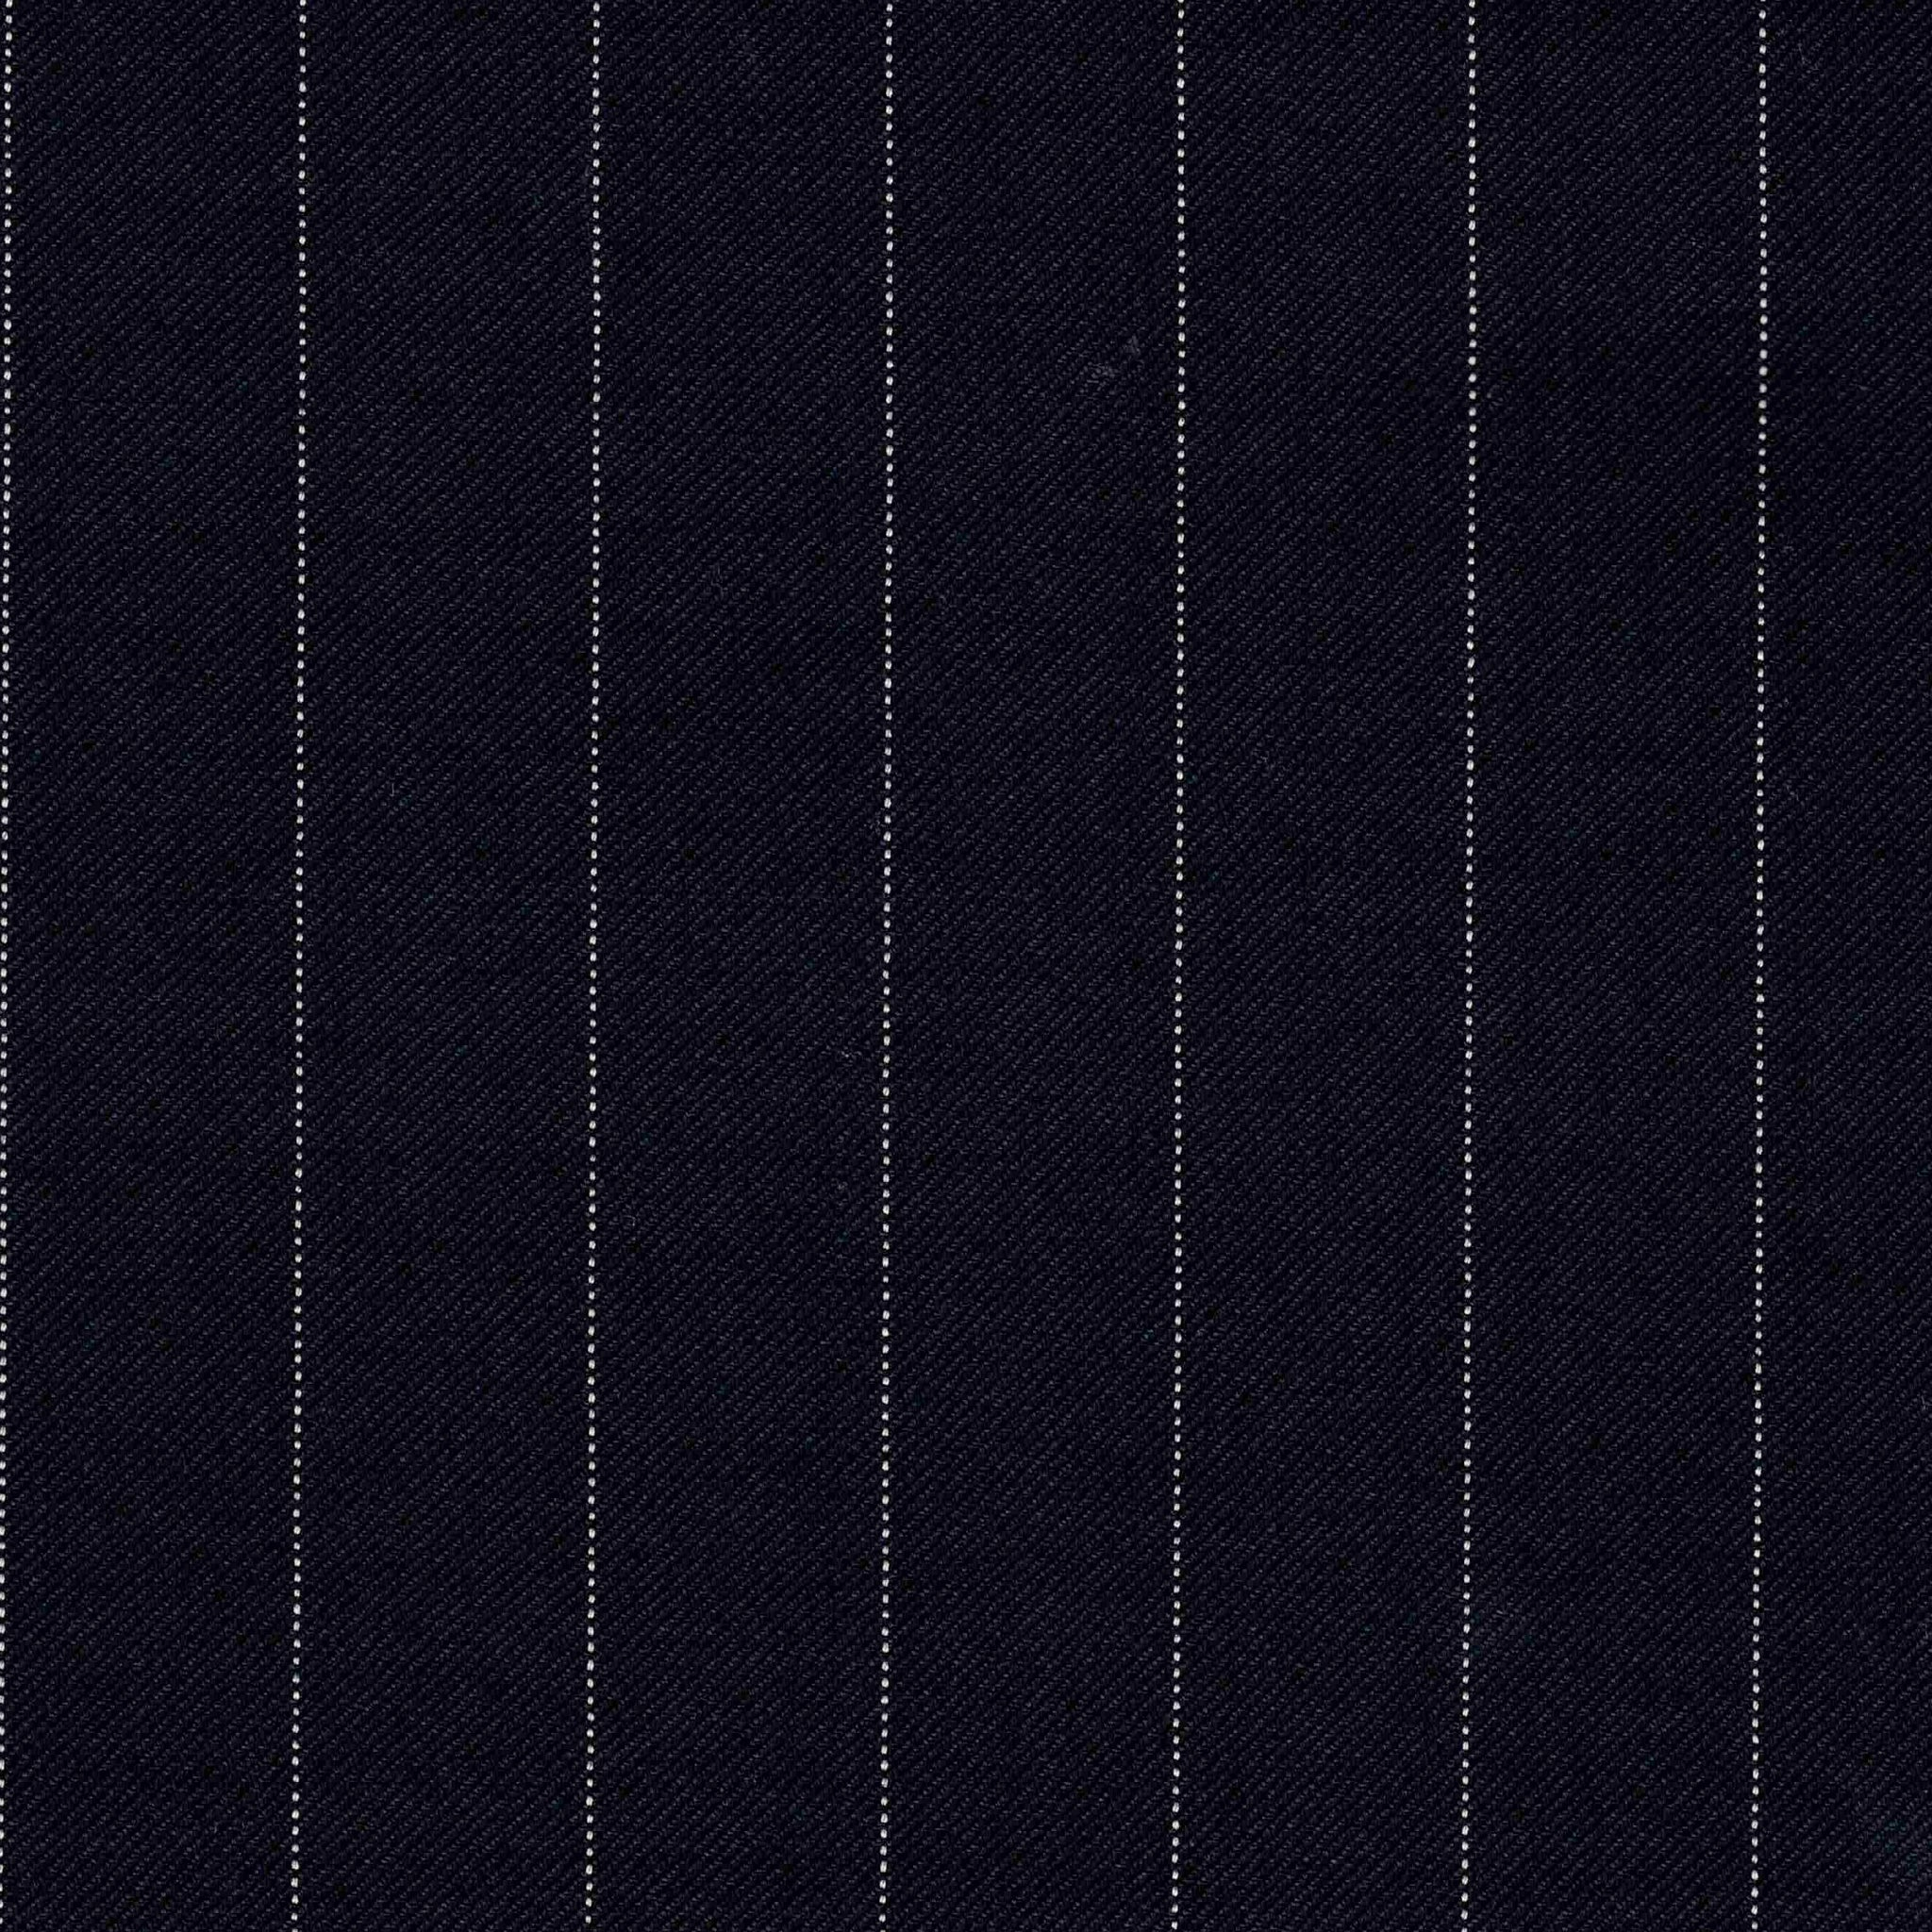 SC0016 NAVY WIDE PIN - B